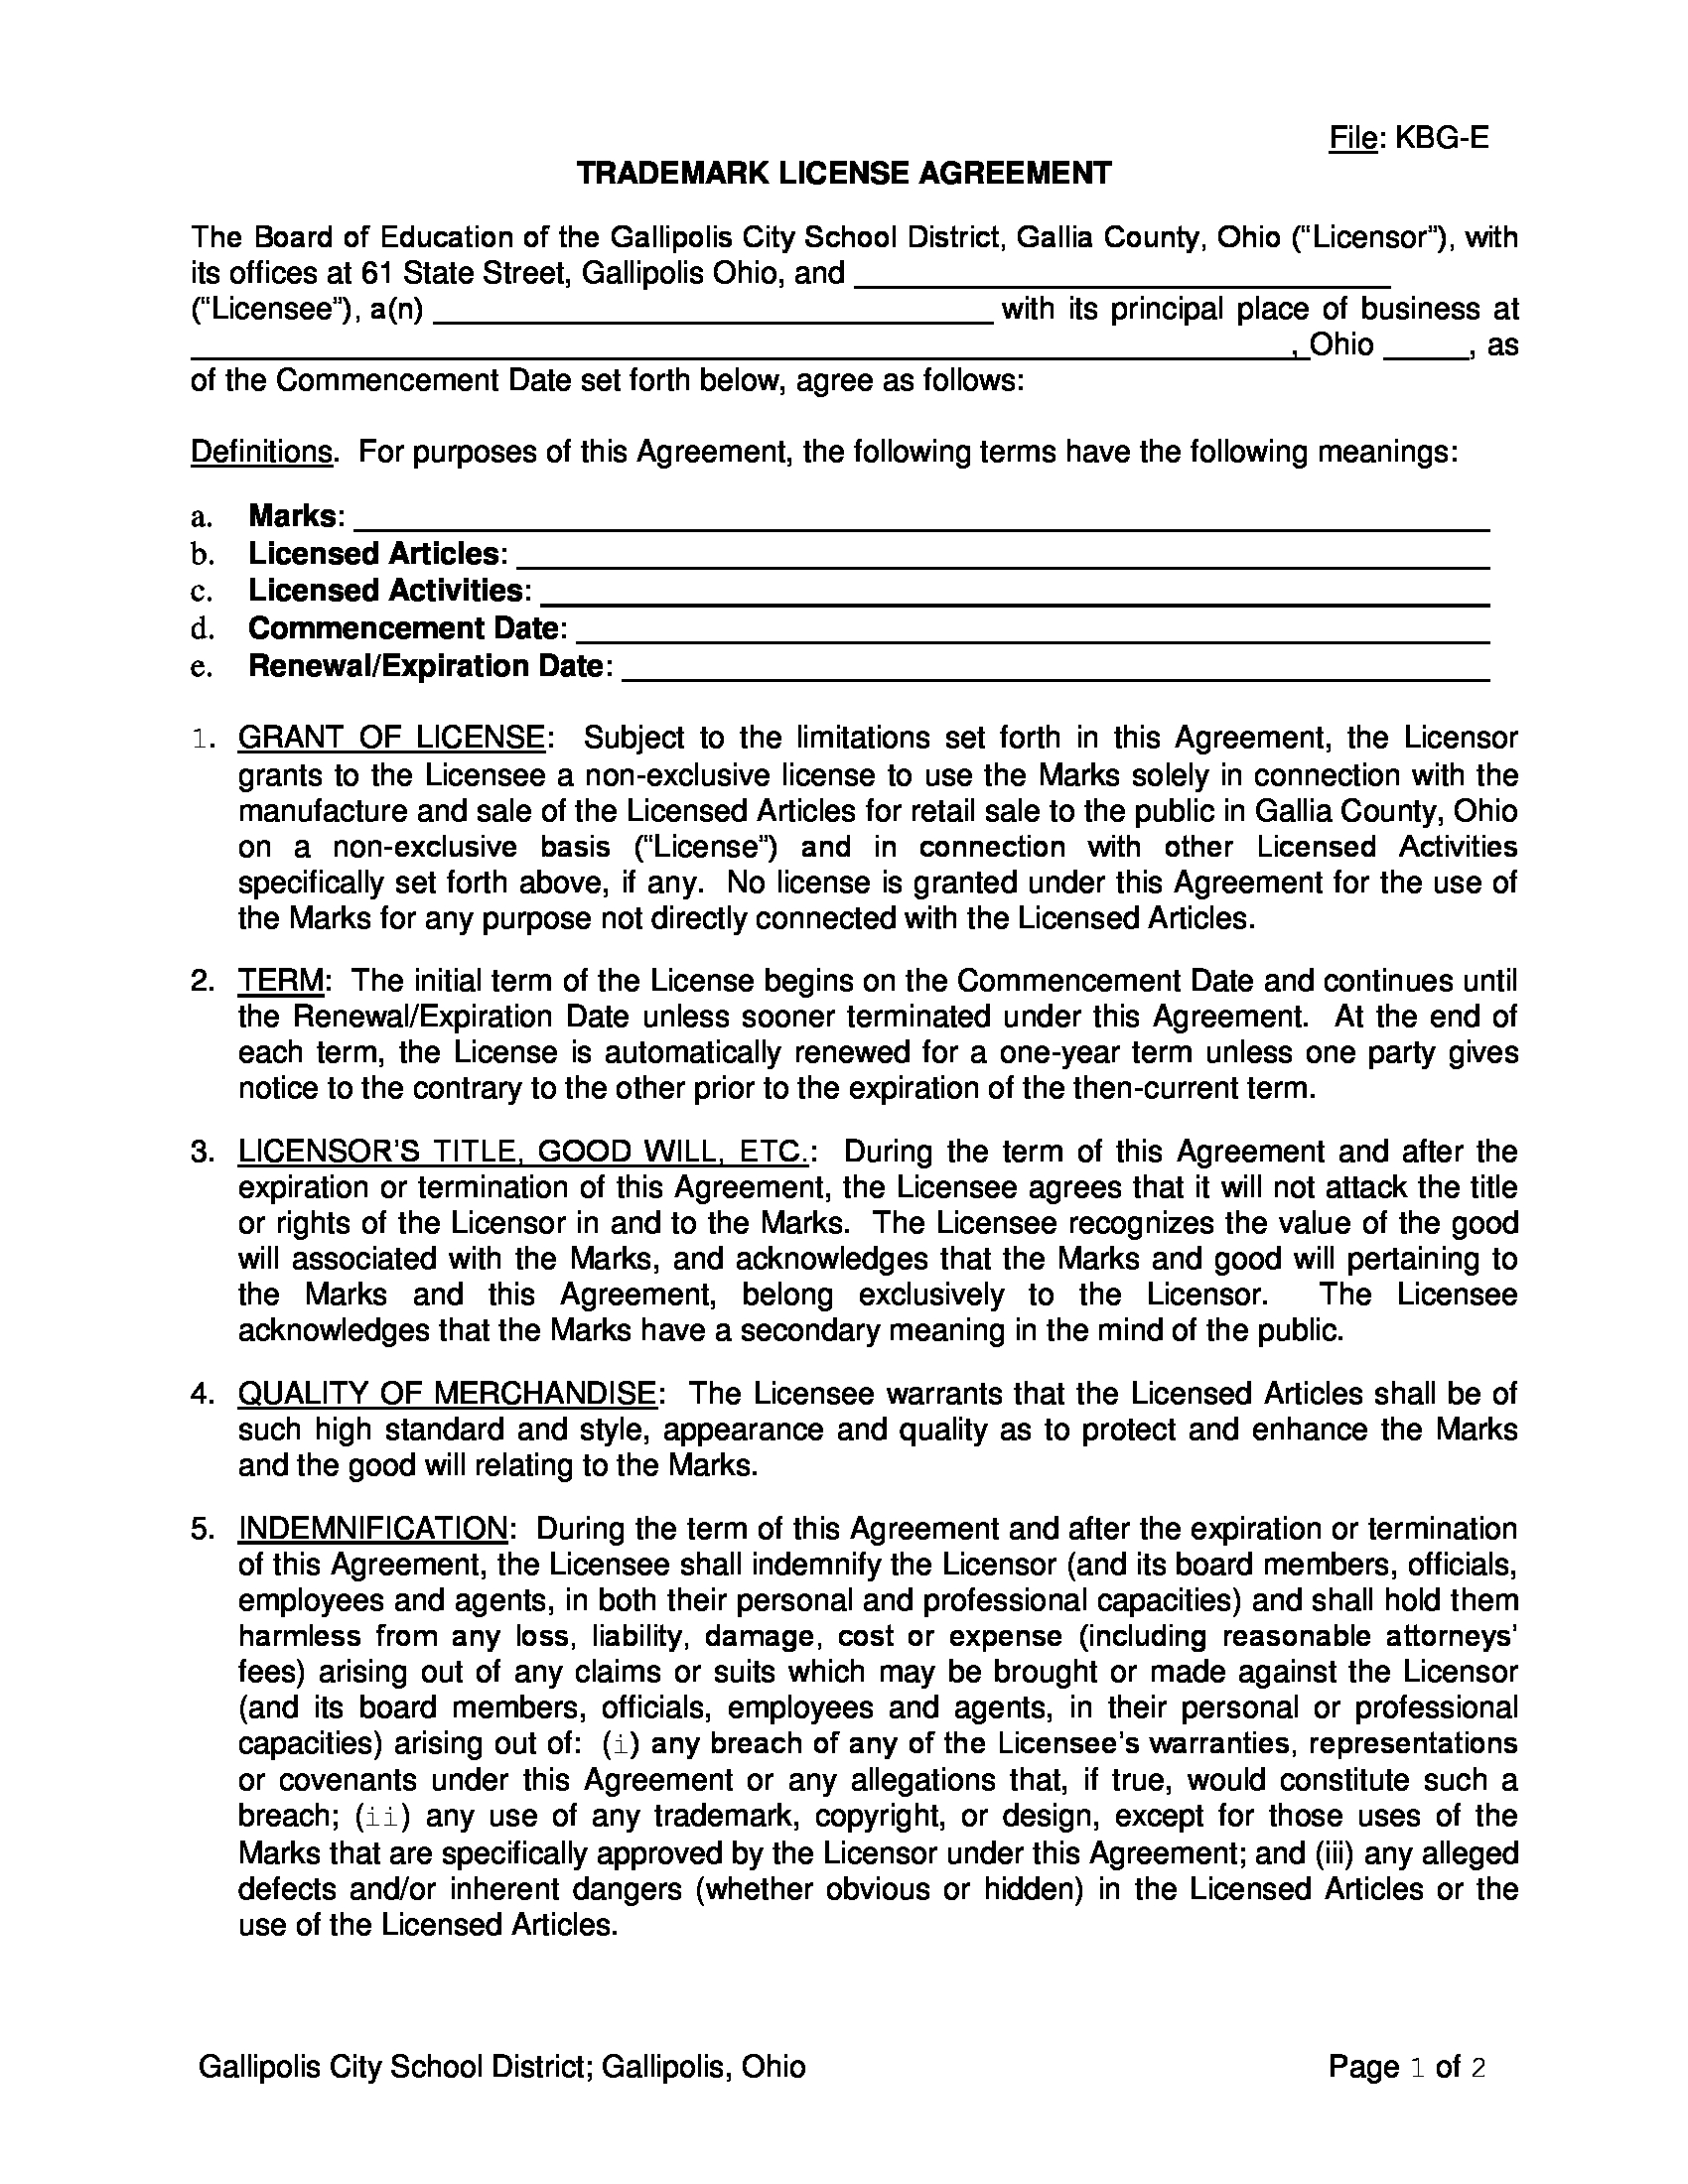 trademark license agreement form in doc 1